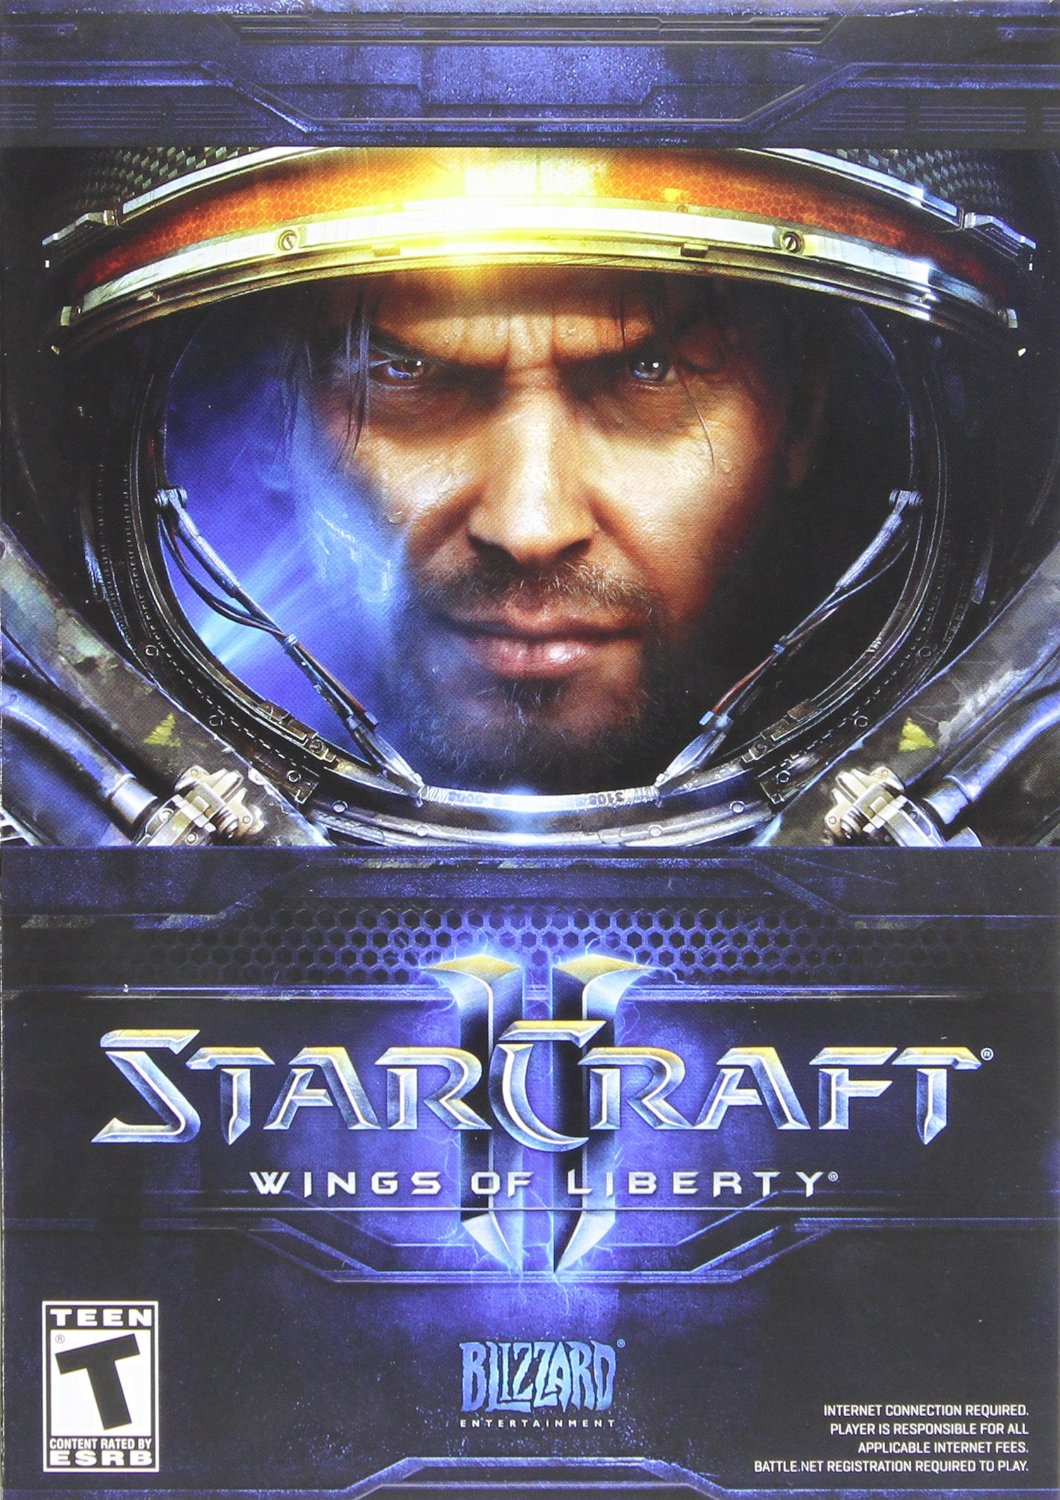 Starcraft 2 Digital Download For Mac